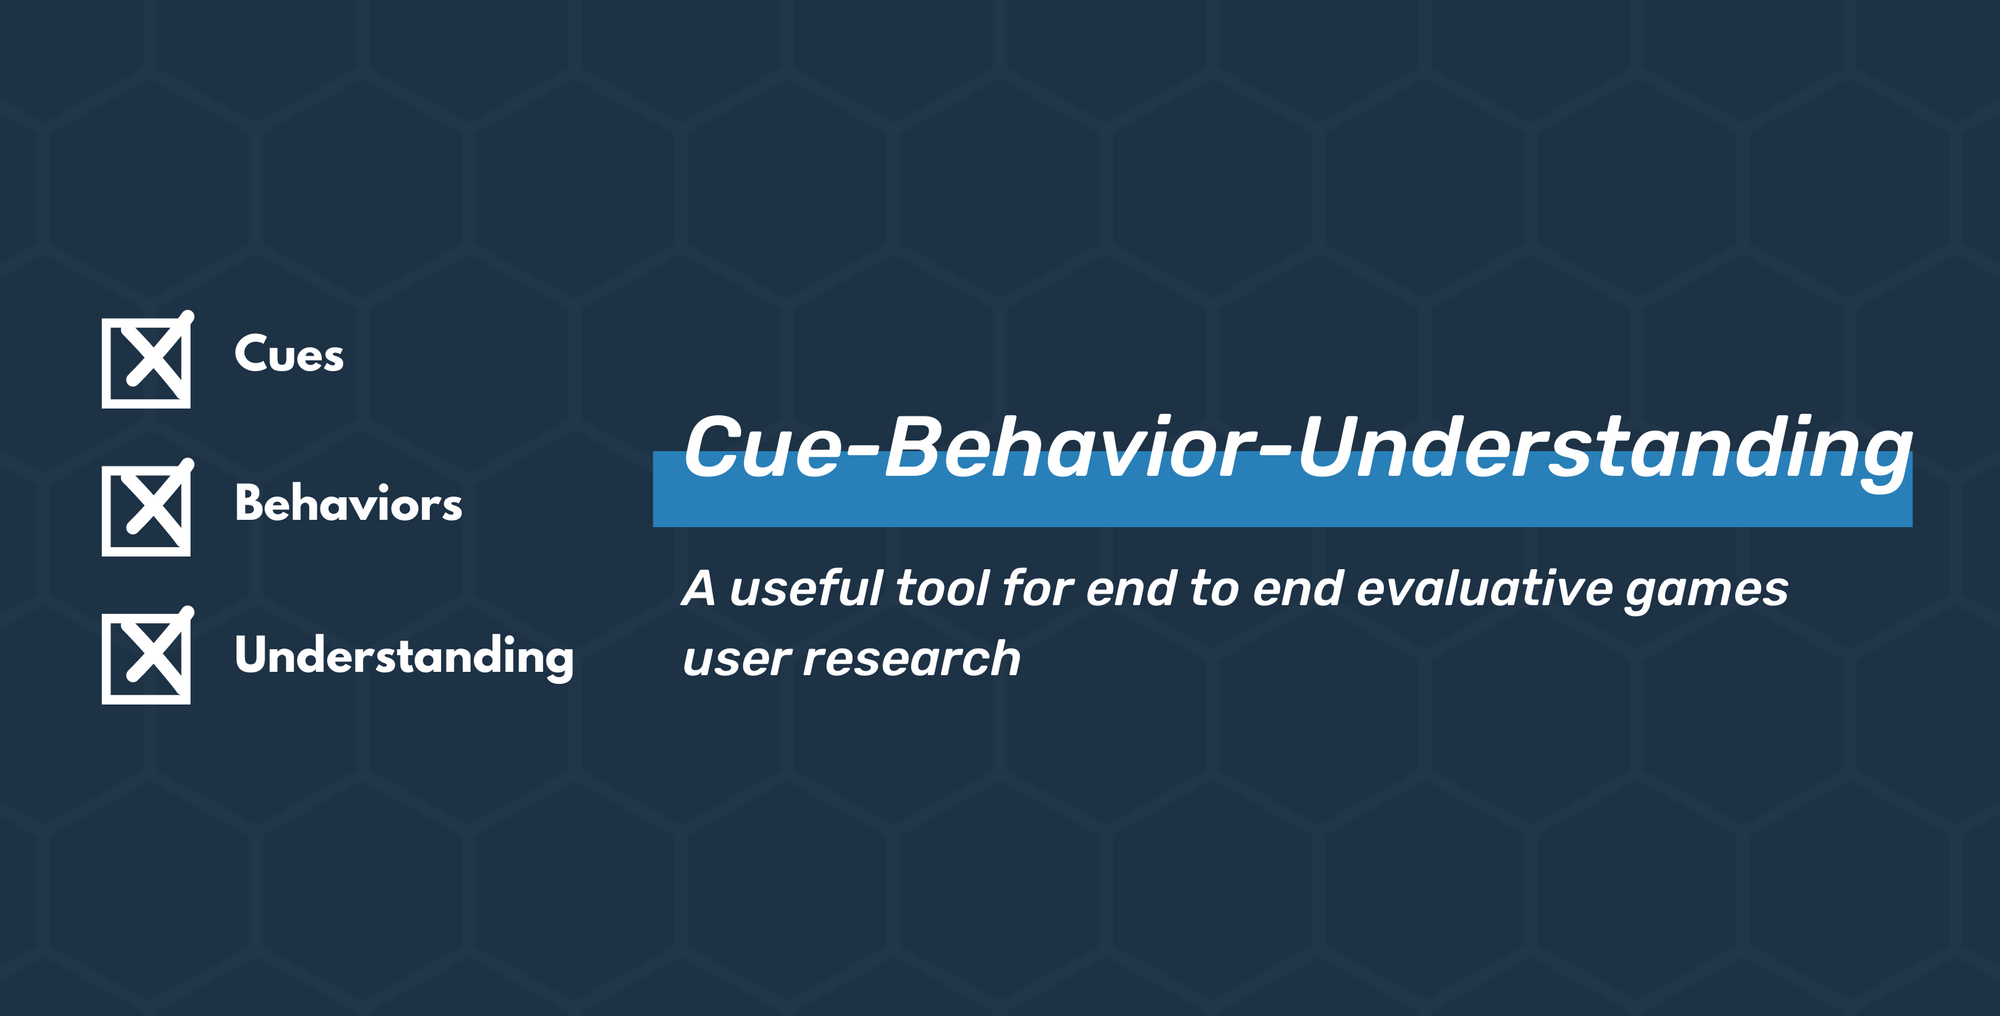 Cue-Behavior-Understanding: A Tool for End to End Evaluative Games User Research